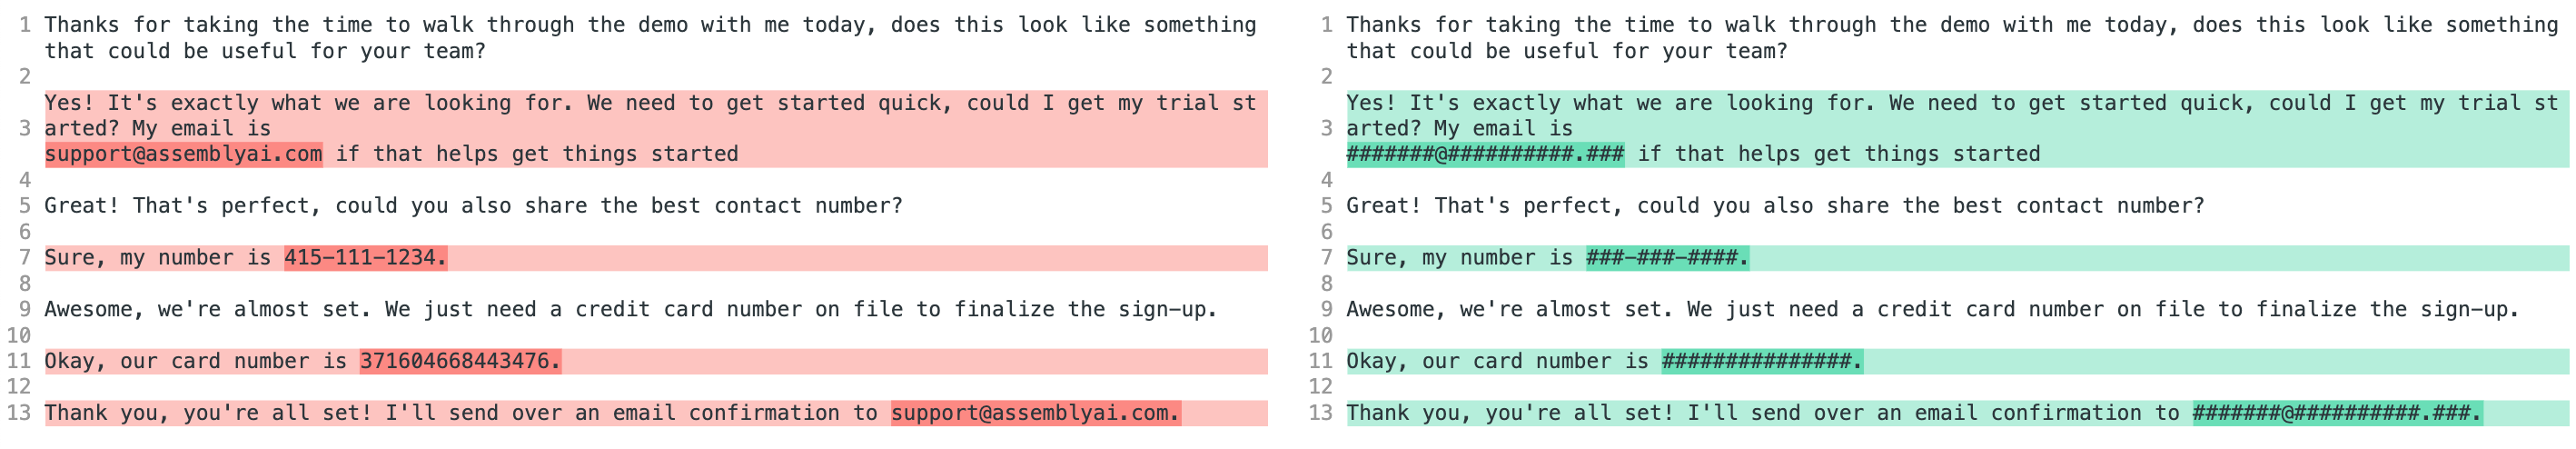 AssemblyAI Speech to Text PII Redaction for Conference Call Platforms.png